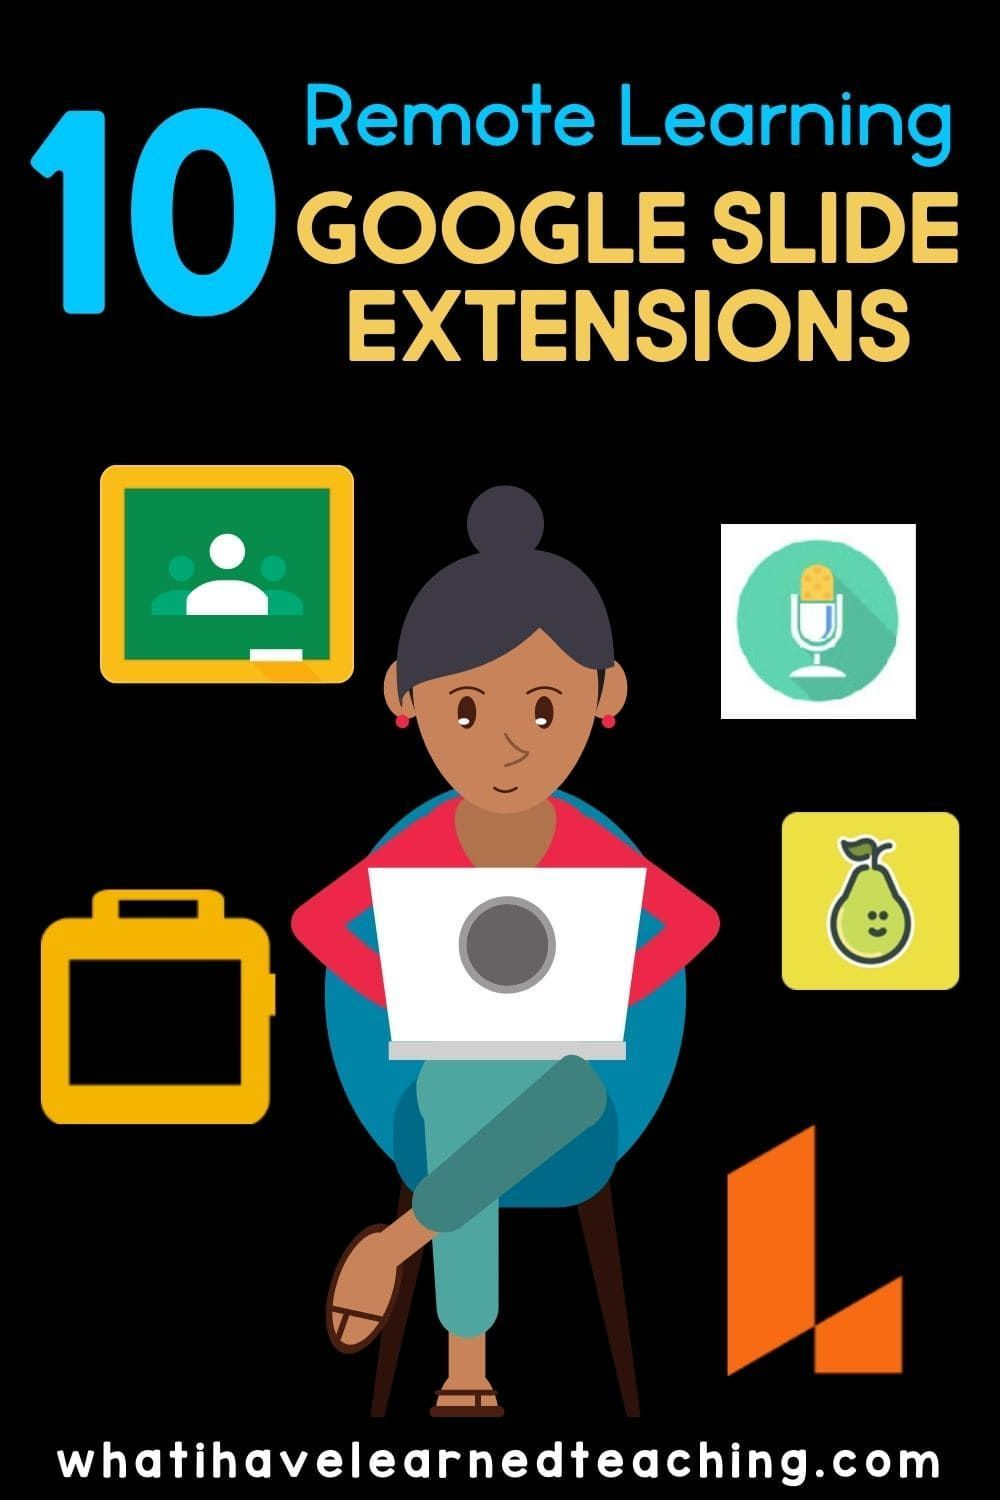 10 Google Slide Extensions for Remote Learning in 2020